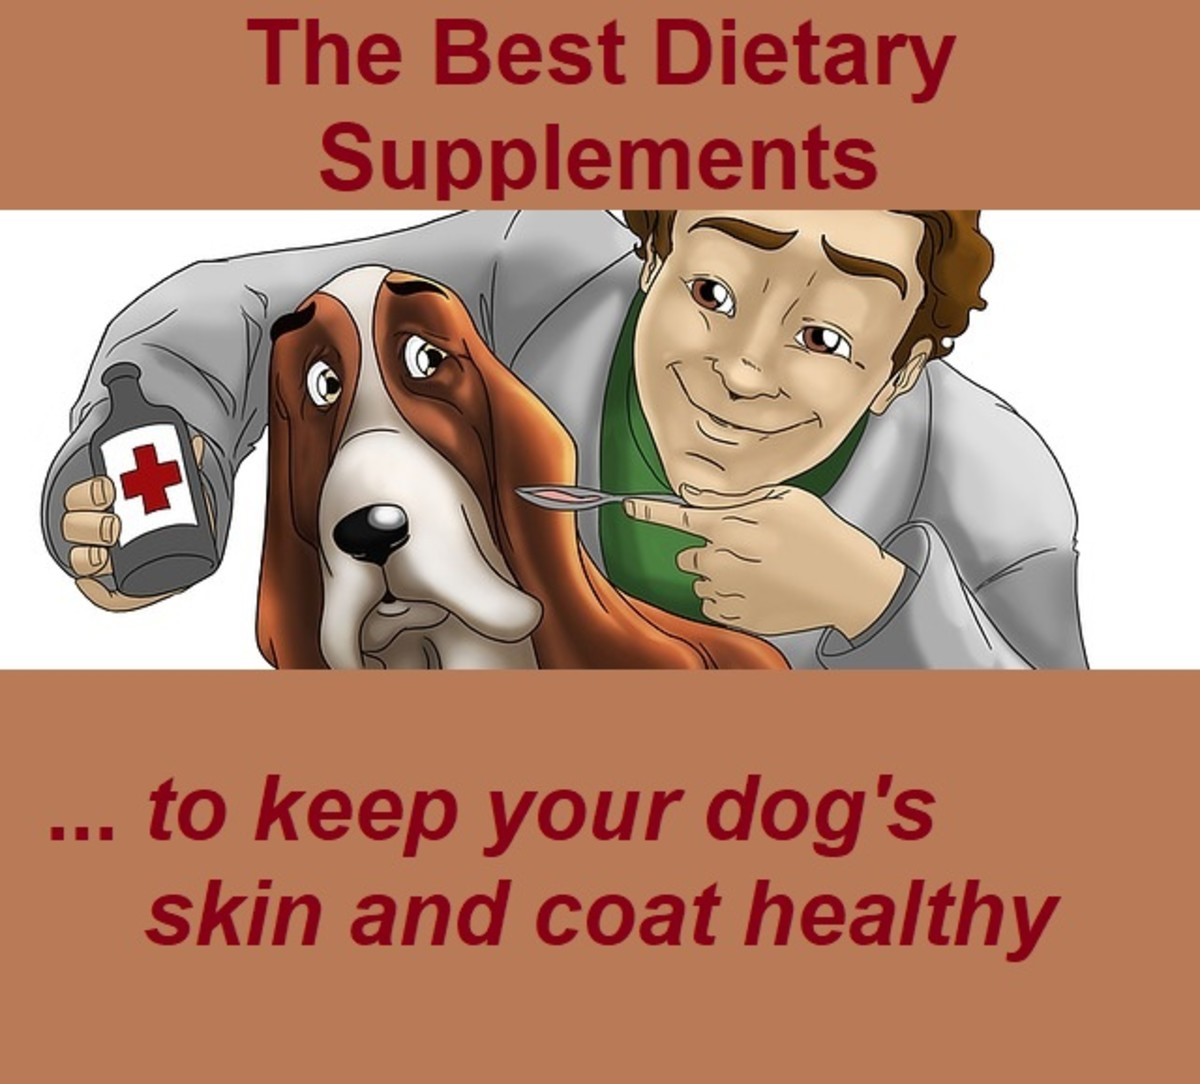 A healthy, balanced diet, water, and plenty of exercise are normally enough to keep your dog's skin and coat in peak condition. However, in some circumstances he may need an extra boost in the form of dietary supplements. Always ask a vet for advice